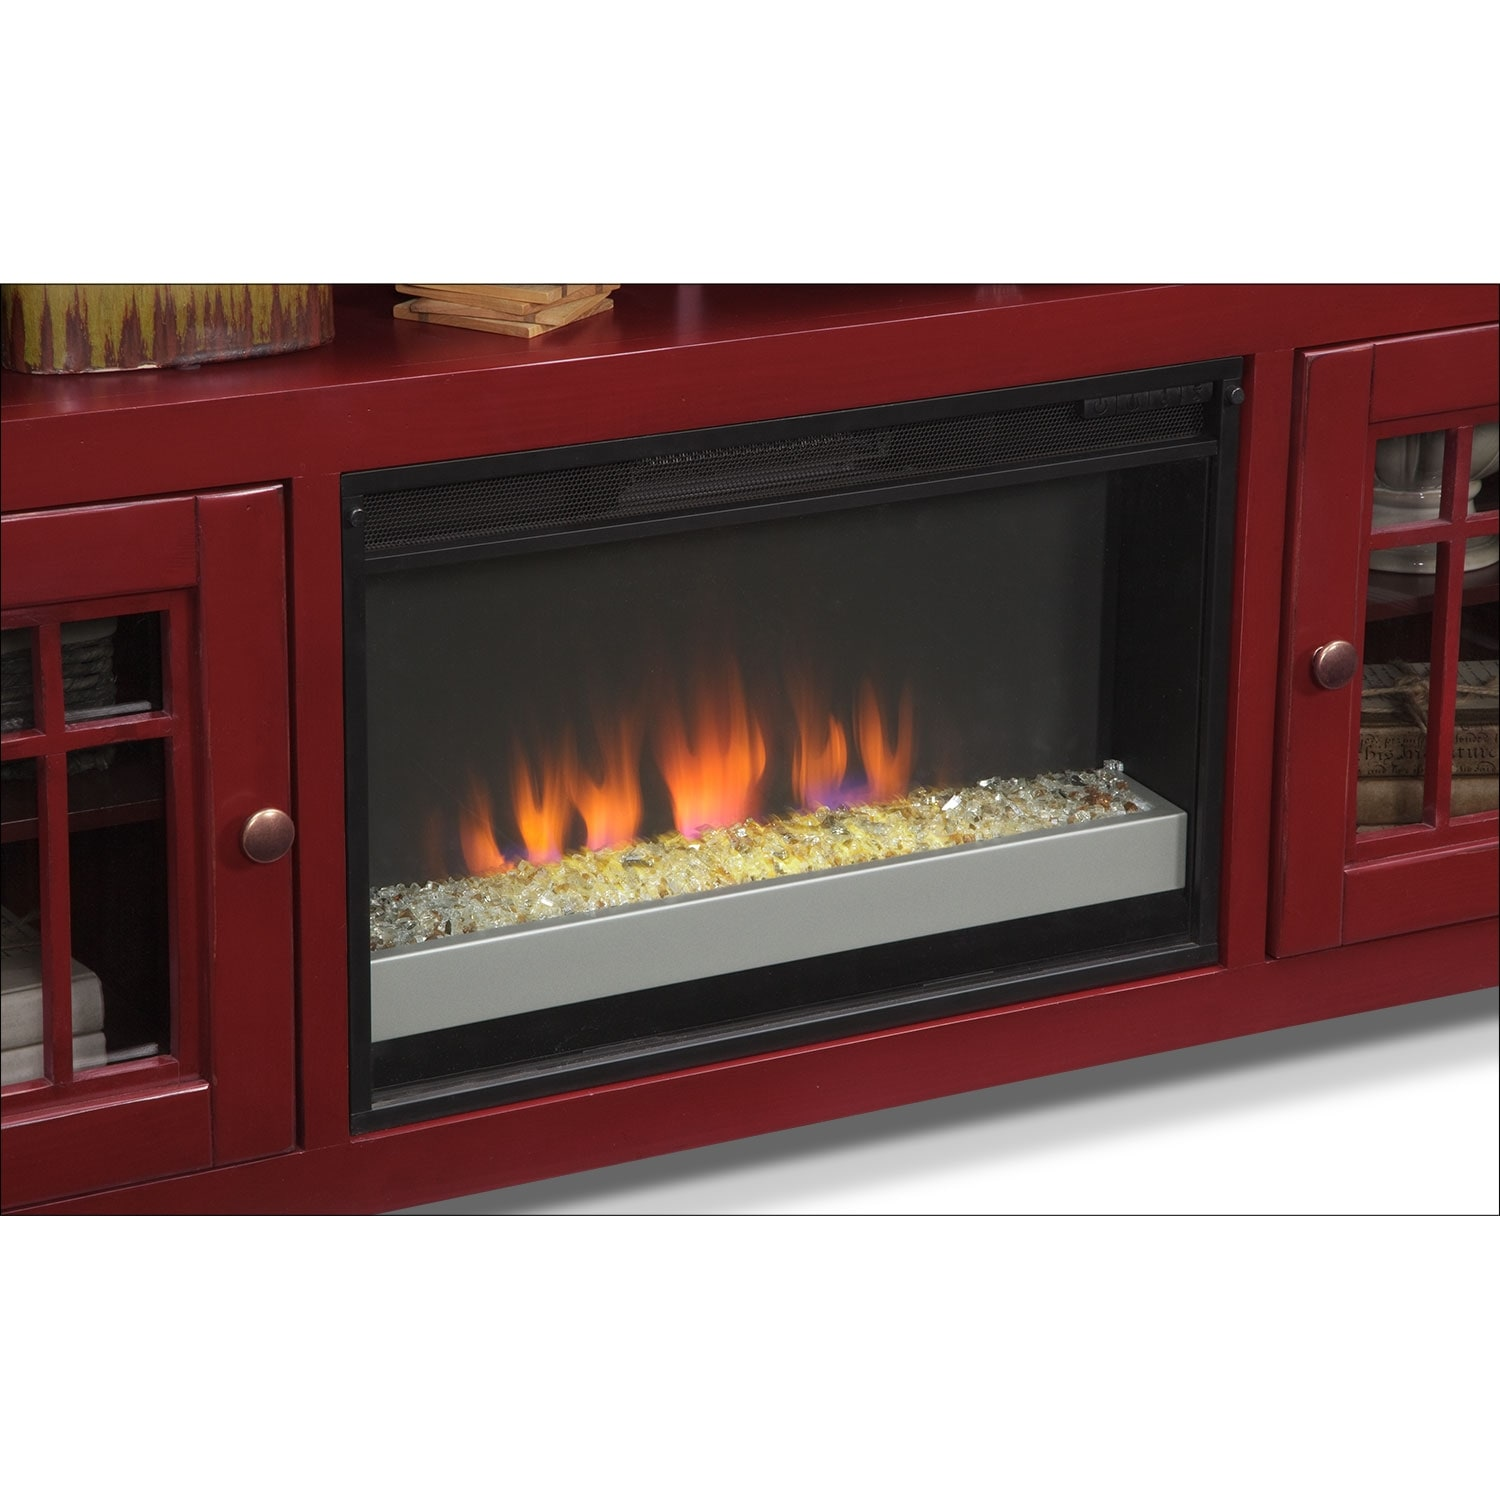 Merrick 74 Quot Fireplace Tv Stand With Contemporary Insert Red American Signature Furniture